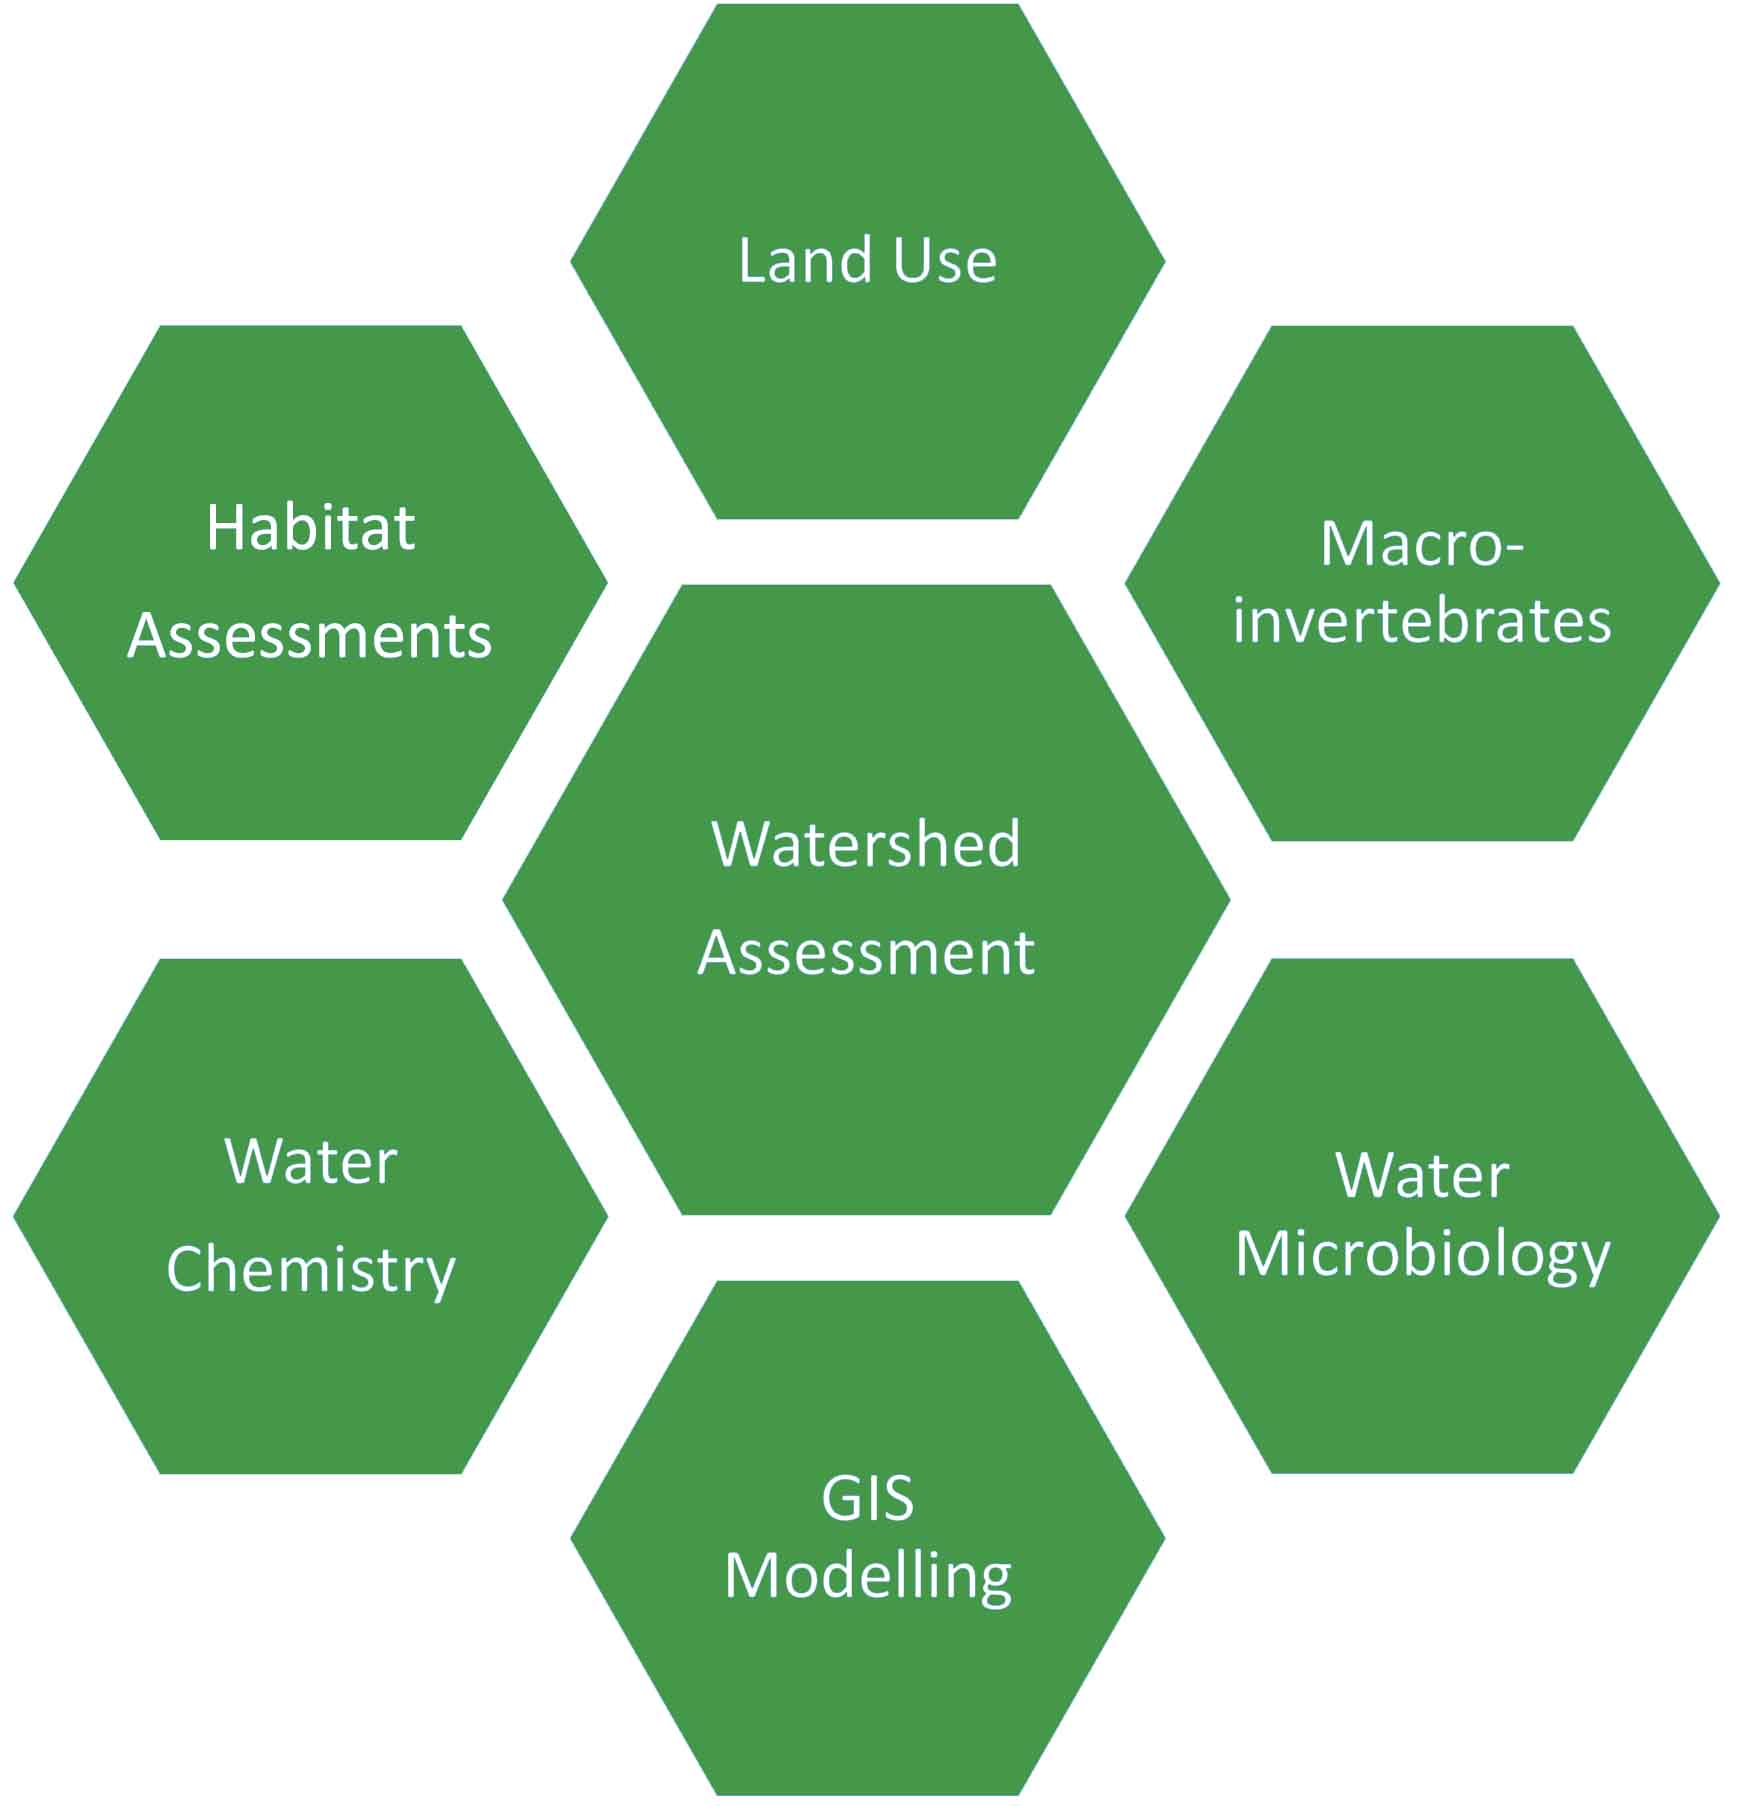 Gis Mapping Companies Watershed Assessment For Healthy Watersheds Green